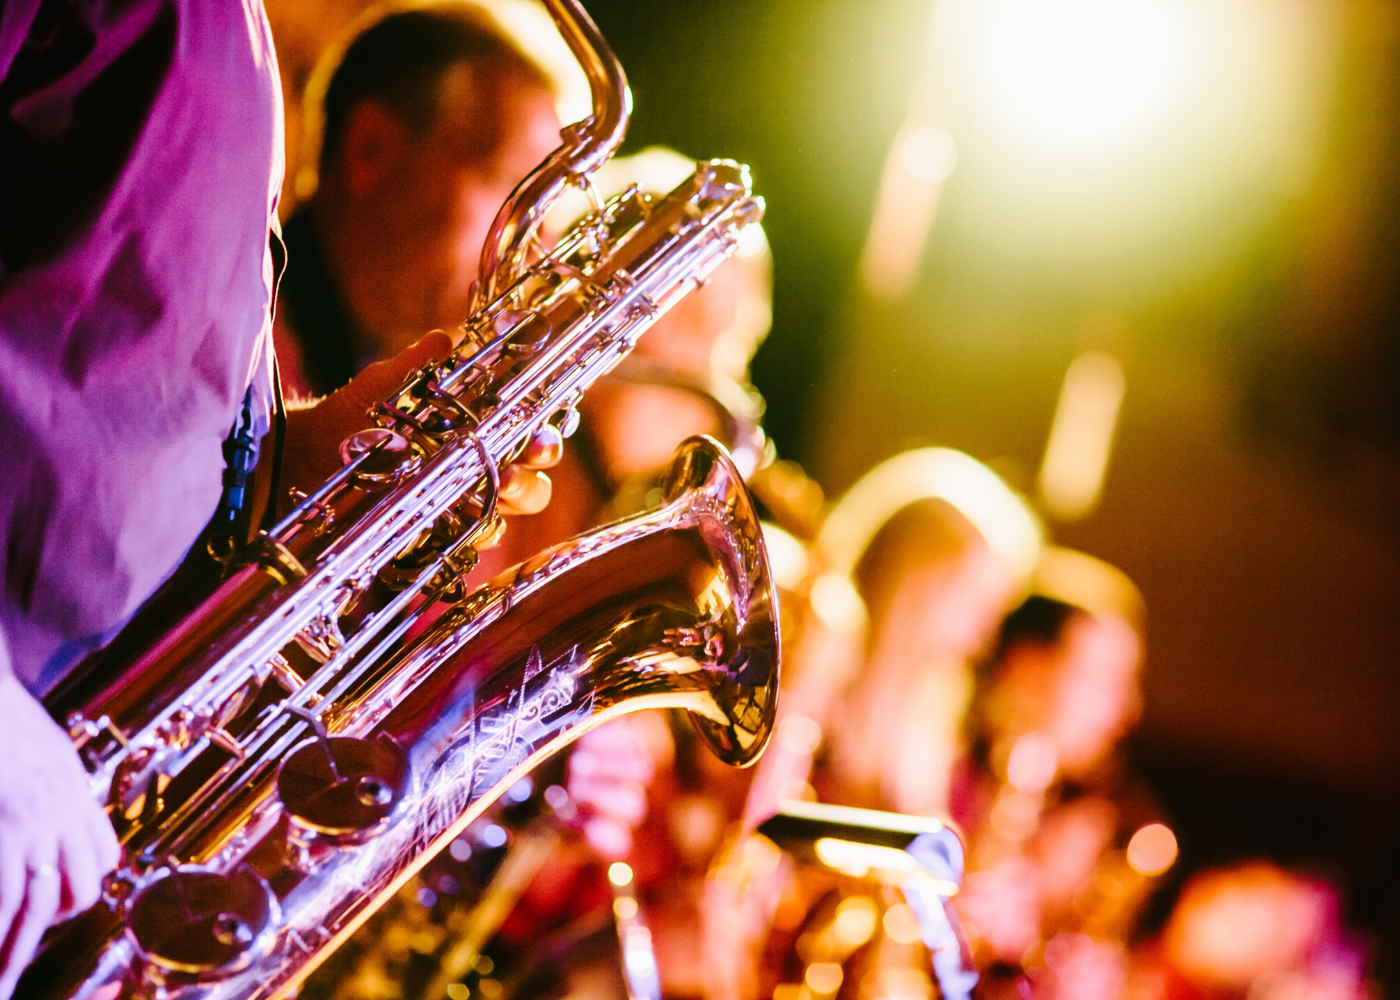 Jazz clubs in Singapore for music and classy cocktails